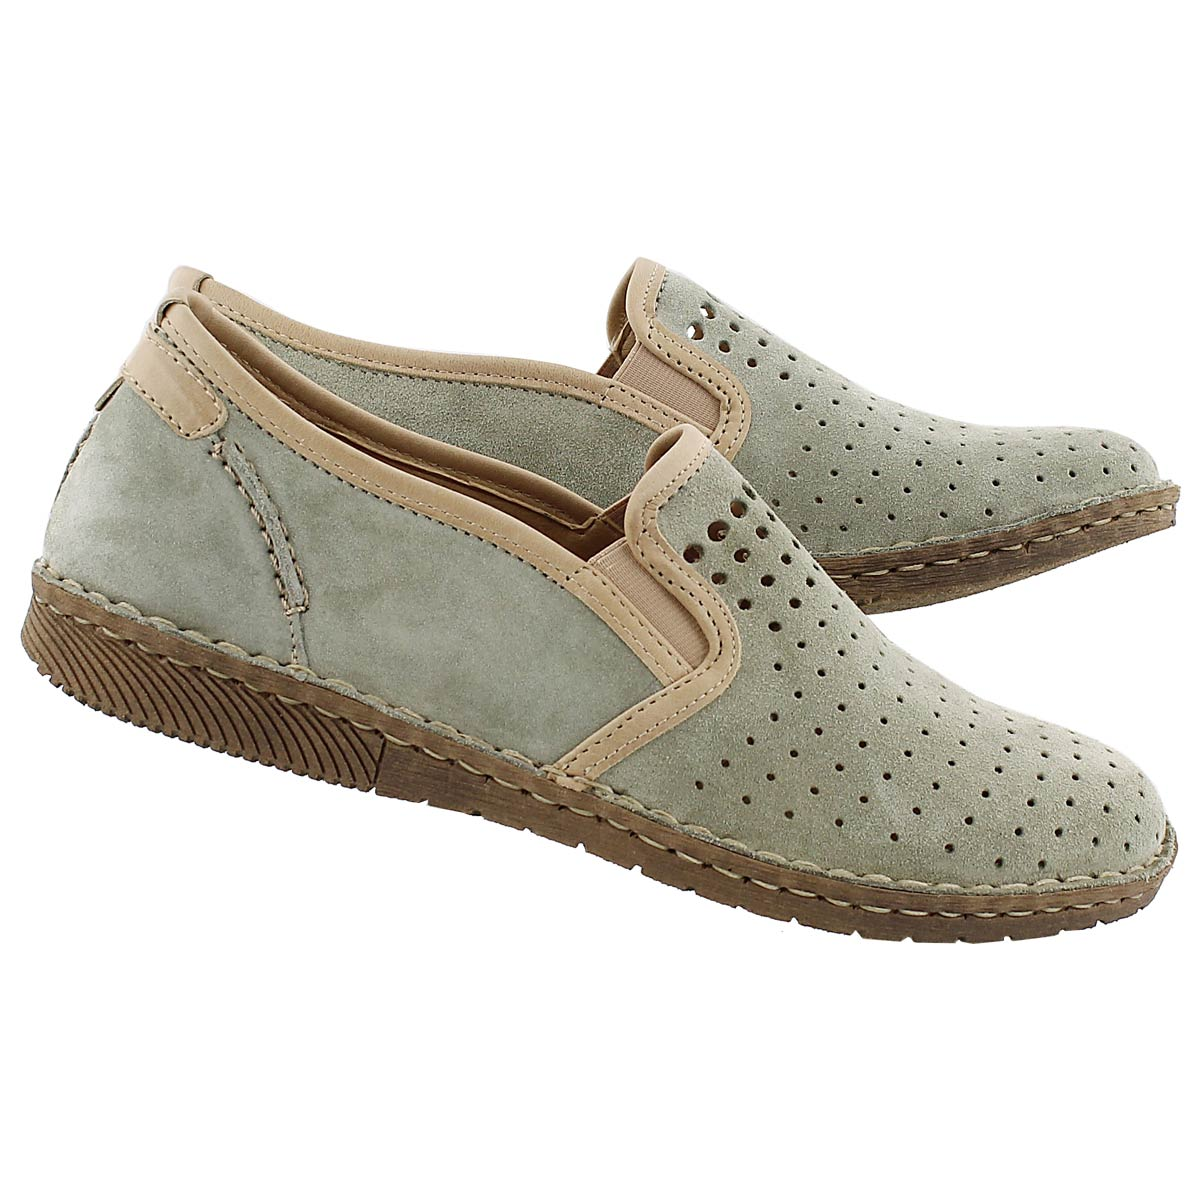 Lds Sofie 11 sage slip on casual shoe